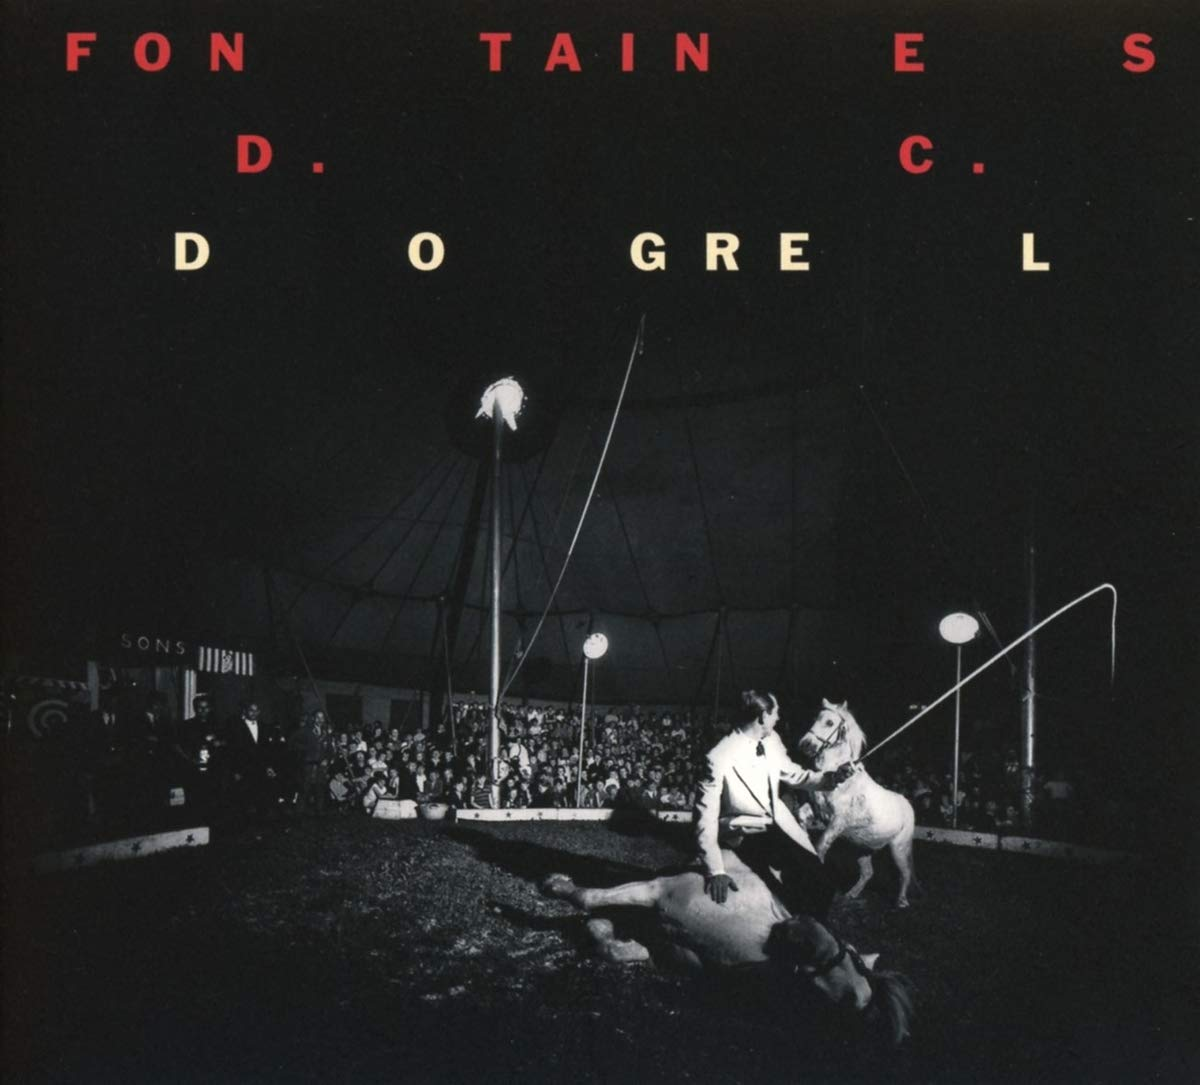 Buy Fontaines D.C. / Dogrel New or Used via Amazon